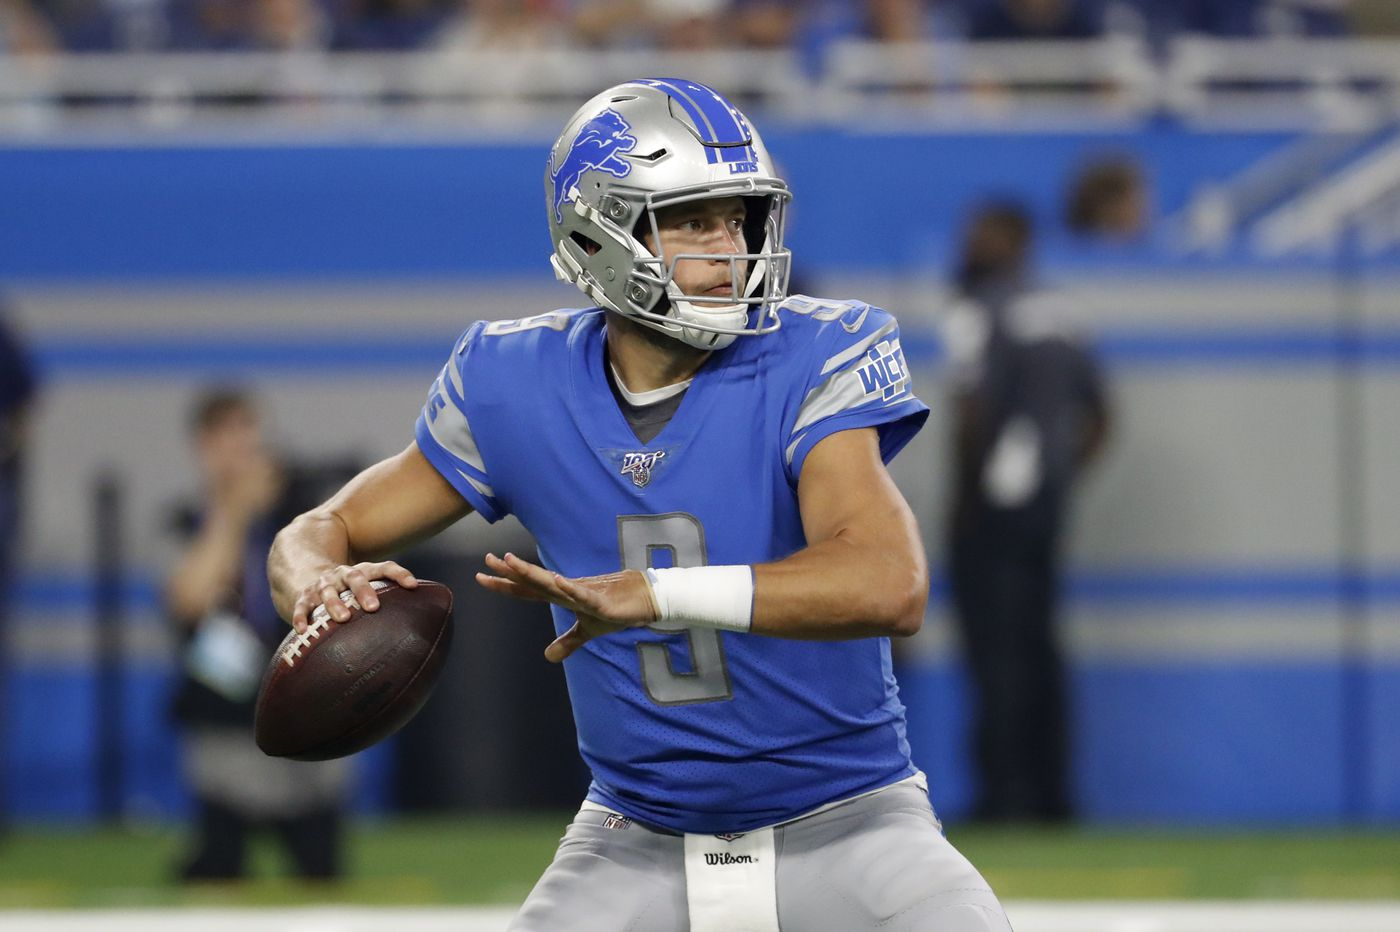 Eagles-Lions: Game predictions from The Inquirer's beat writers